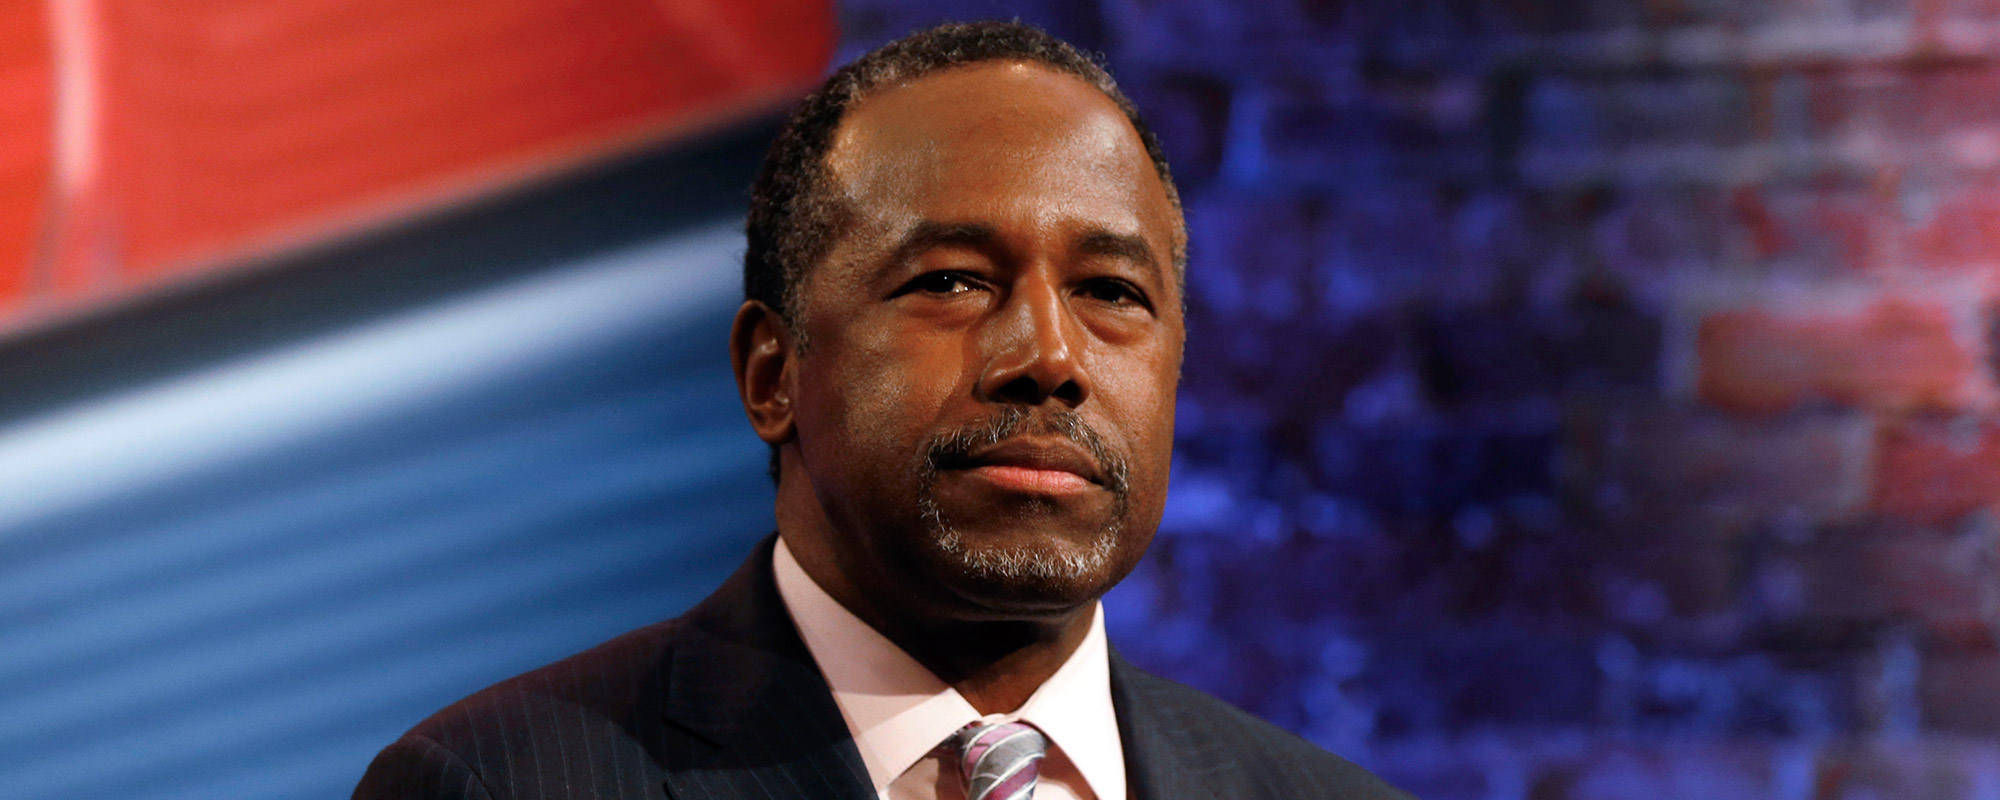 Republican presidential candidate Ben Carson waits during a commercial break at a CNN town hall event, Tuesday, Feb. 16, 2016, in Greenville, S.C.